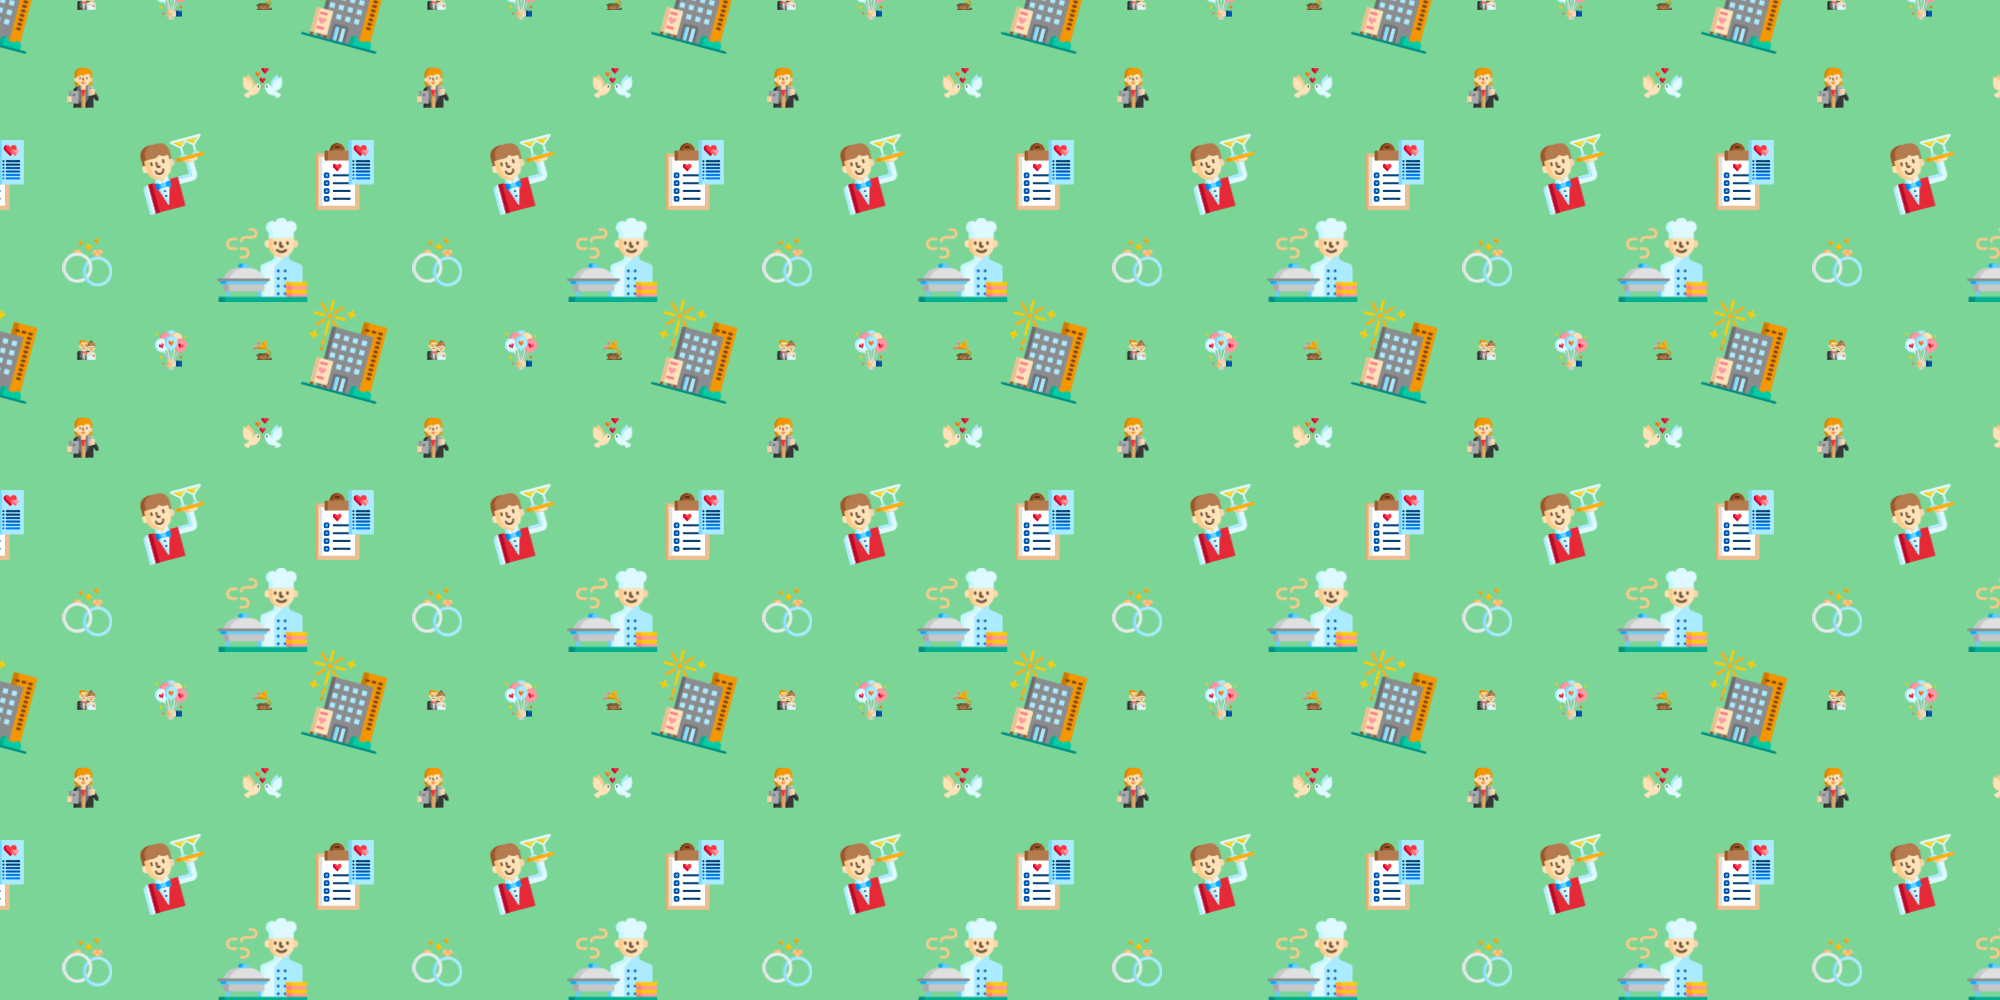 I will unique and amzing pattern design